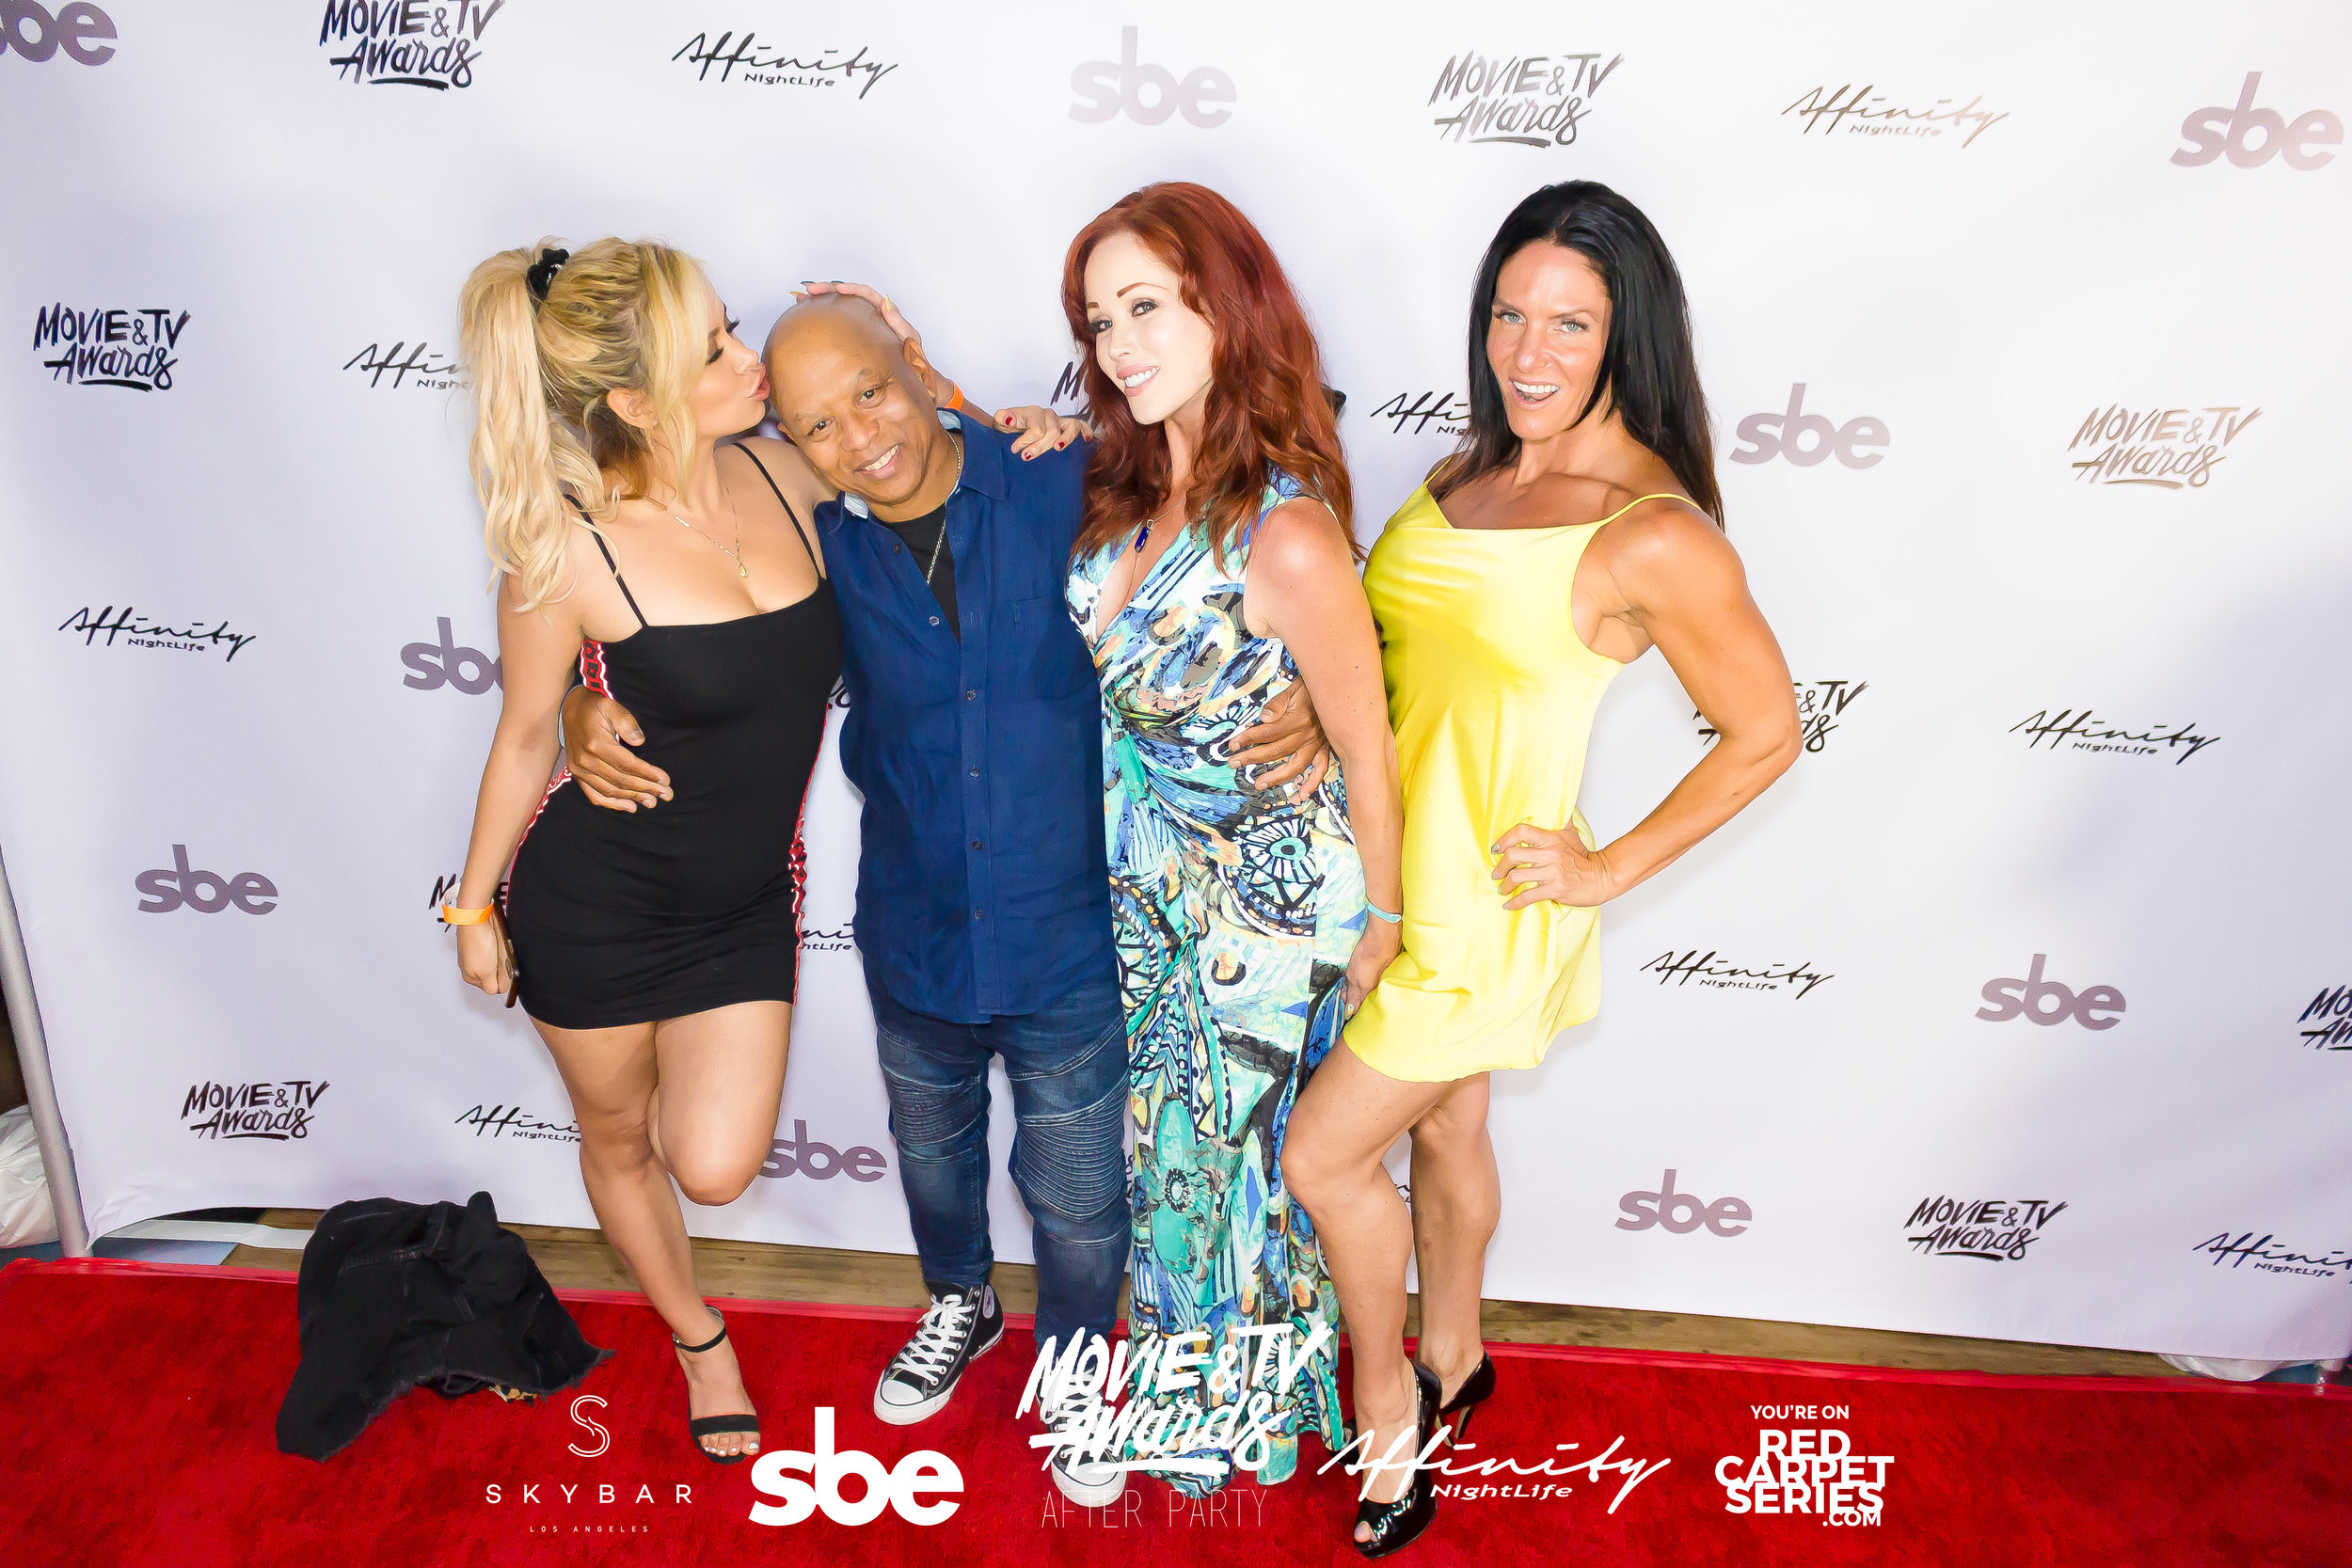 Affinity Nightlife MTV Movie & TV Awards After Party - Skybar at Mondrian - 06-15-19 - Vol. 2_22.jpg